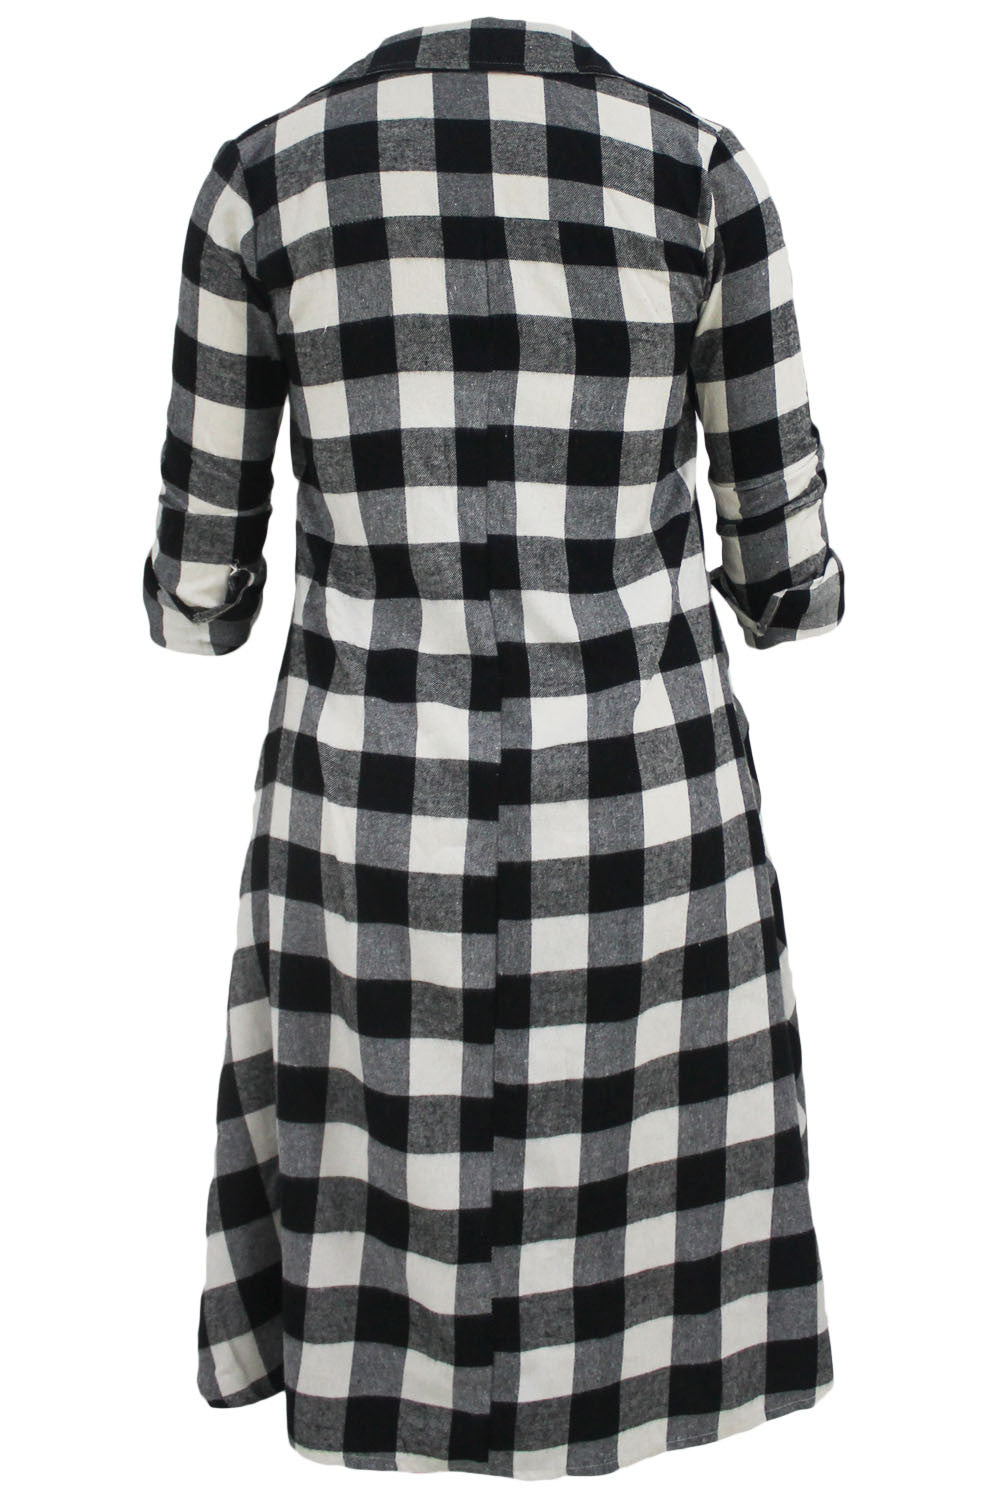 Plaid Flared High Low Shirt Dress - IBL Fashion - 5